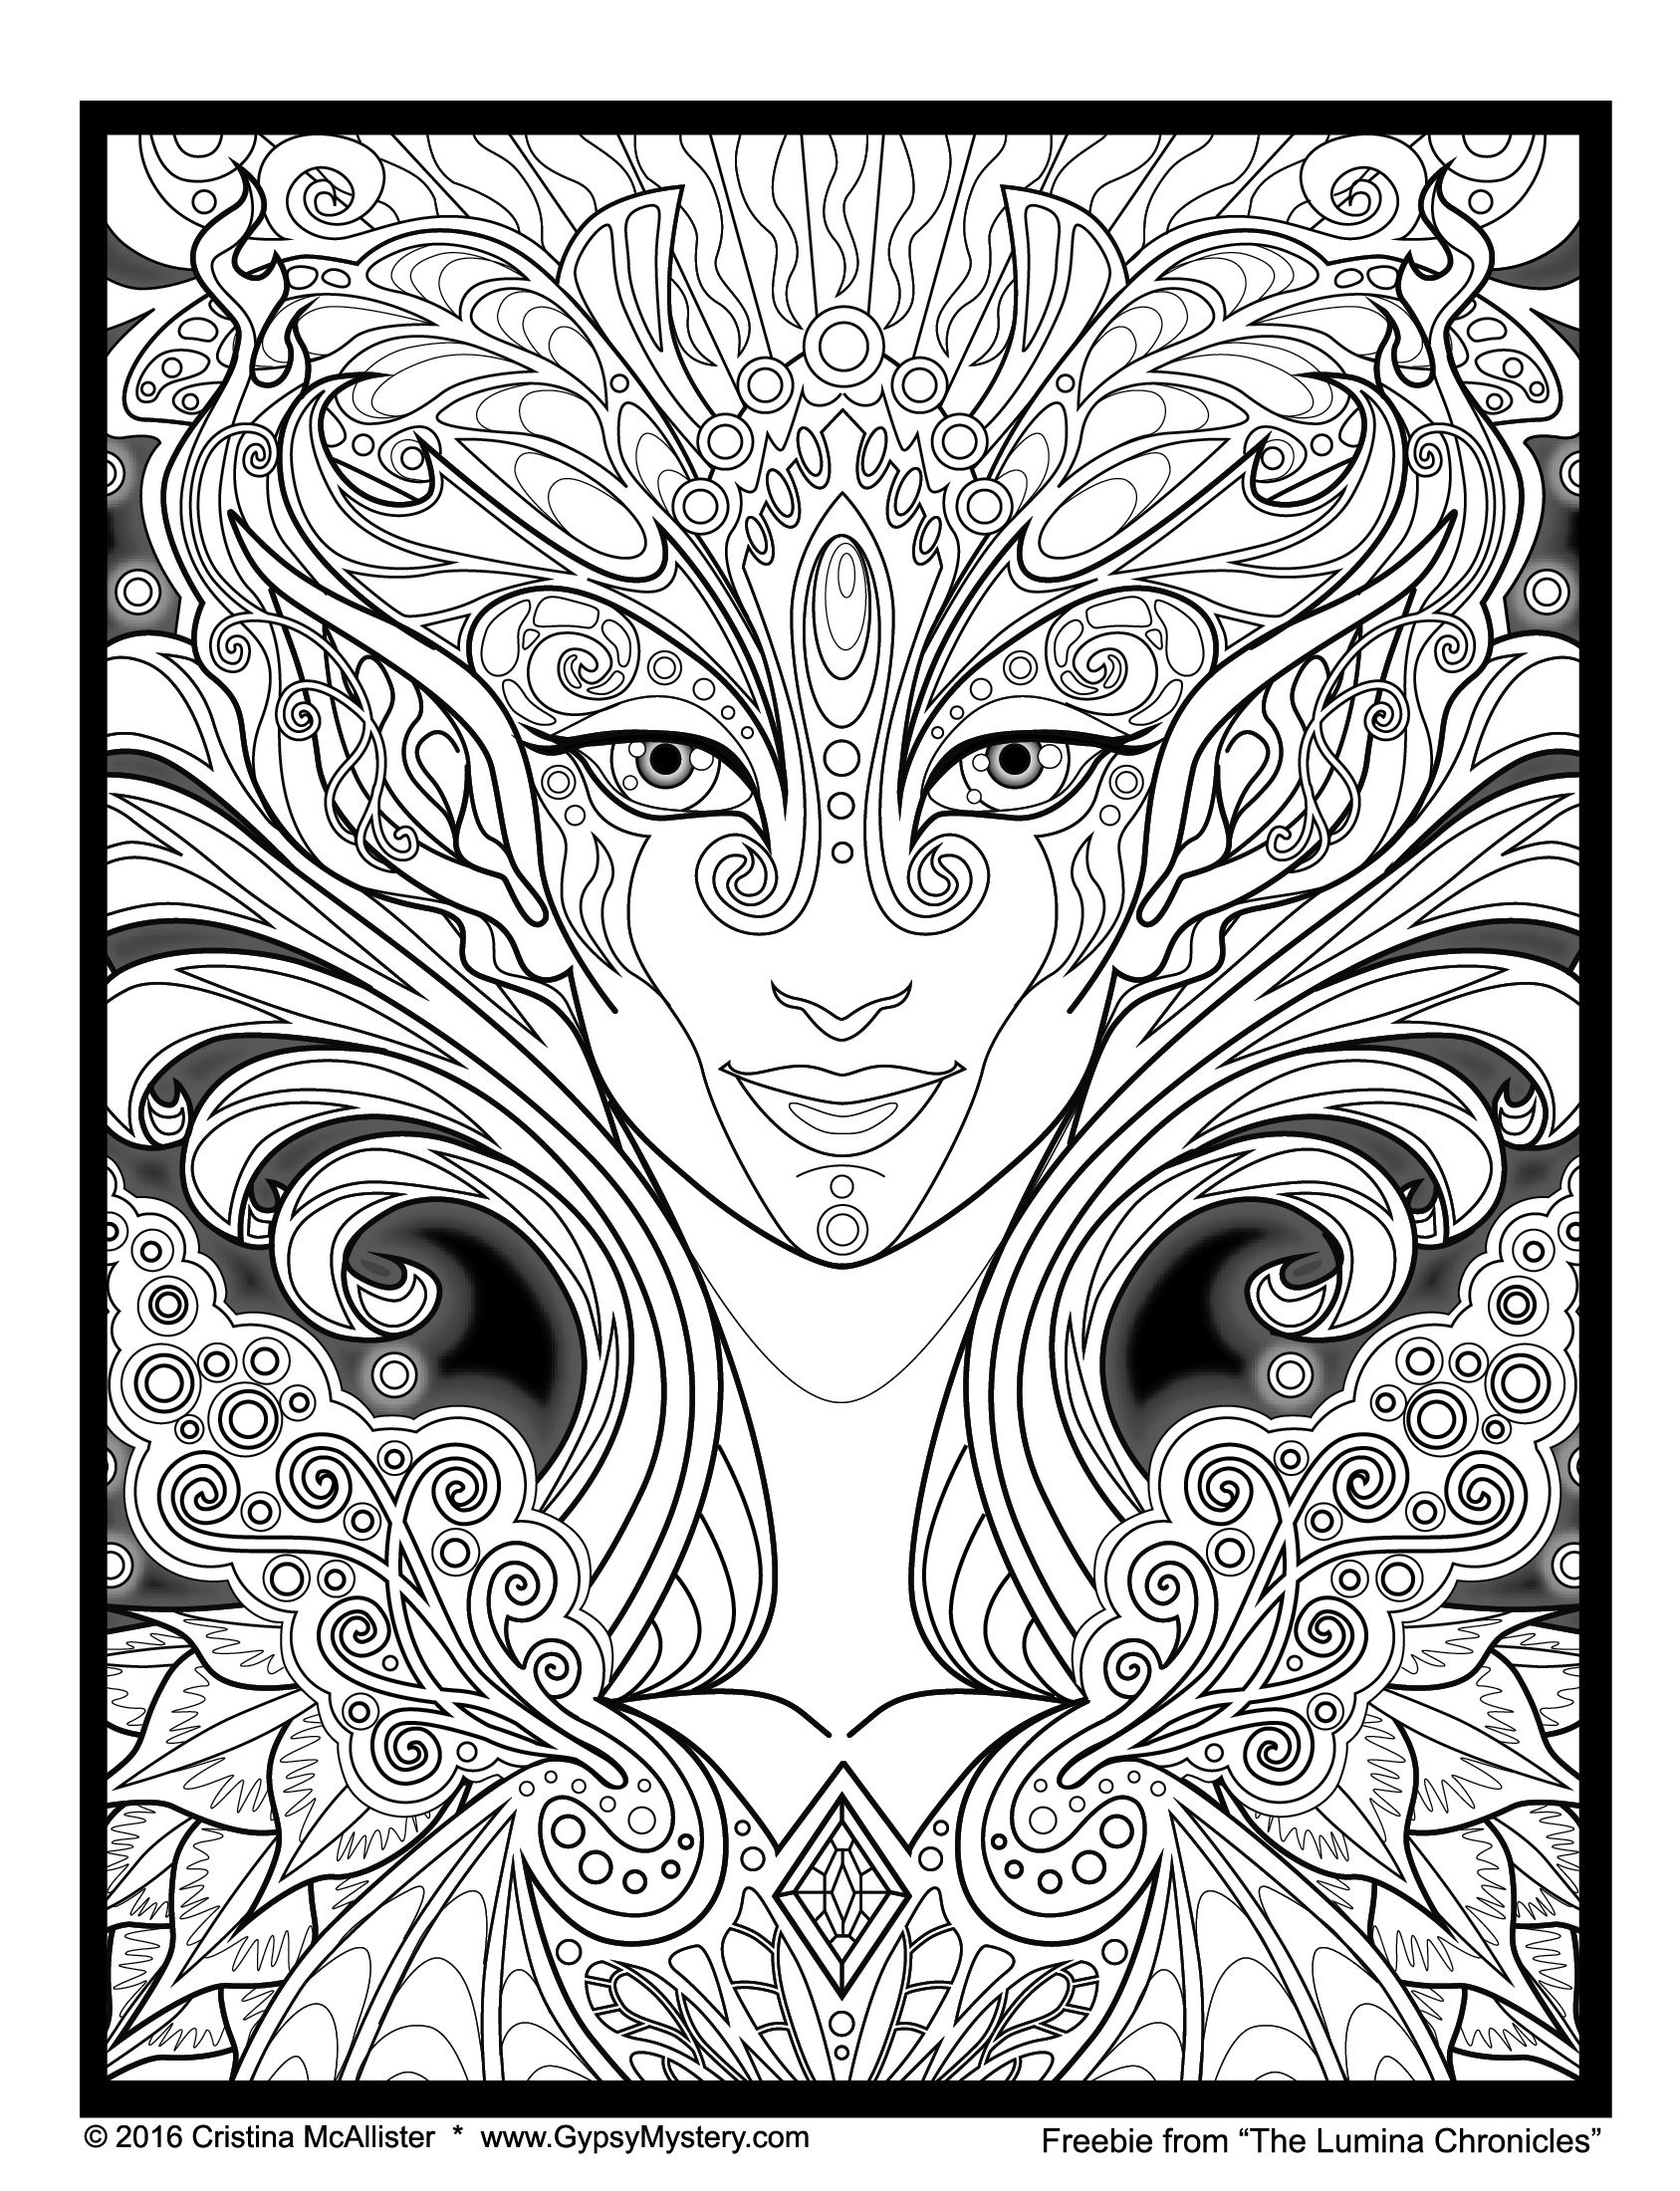 CRISTINA MCALLISTER – Maniacal Confessions   Coloring pages   Pinterest   Coloriage, Colorier